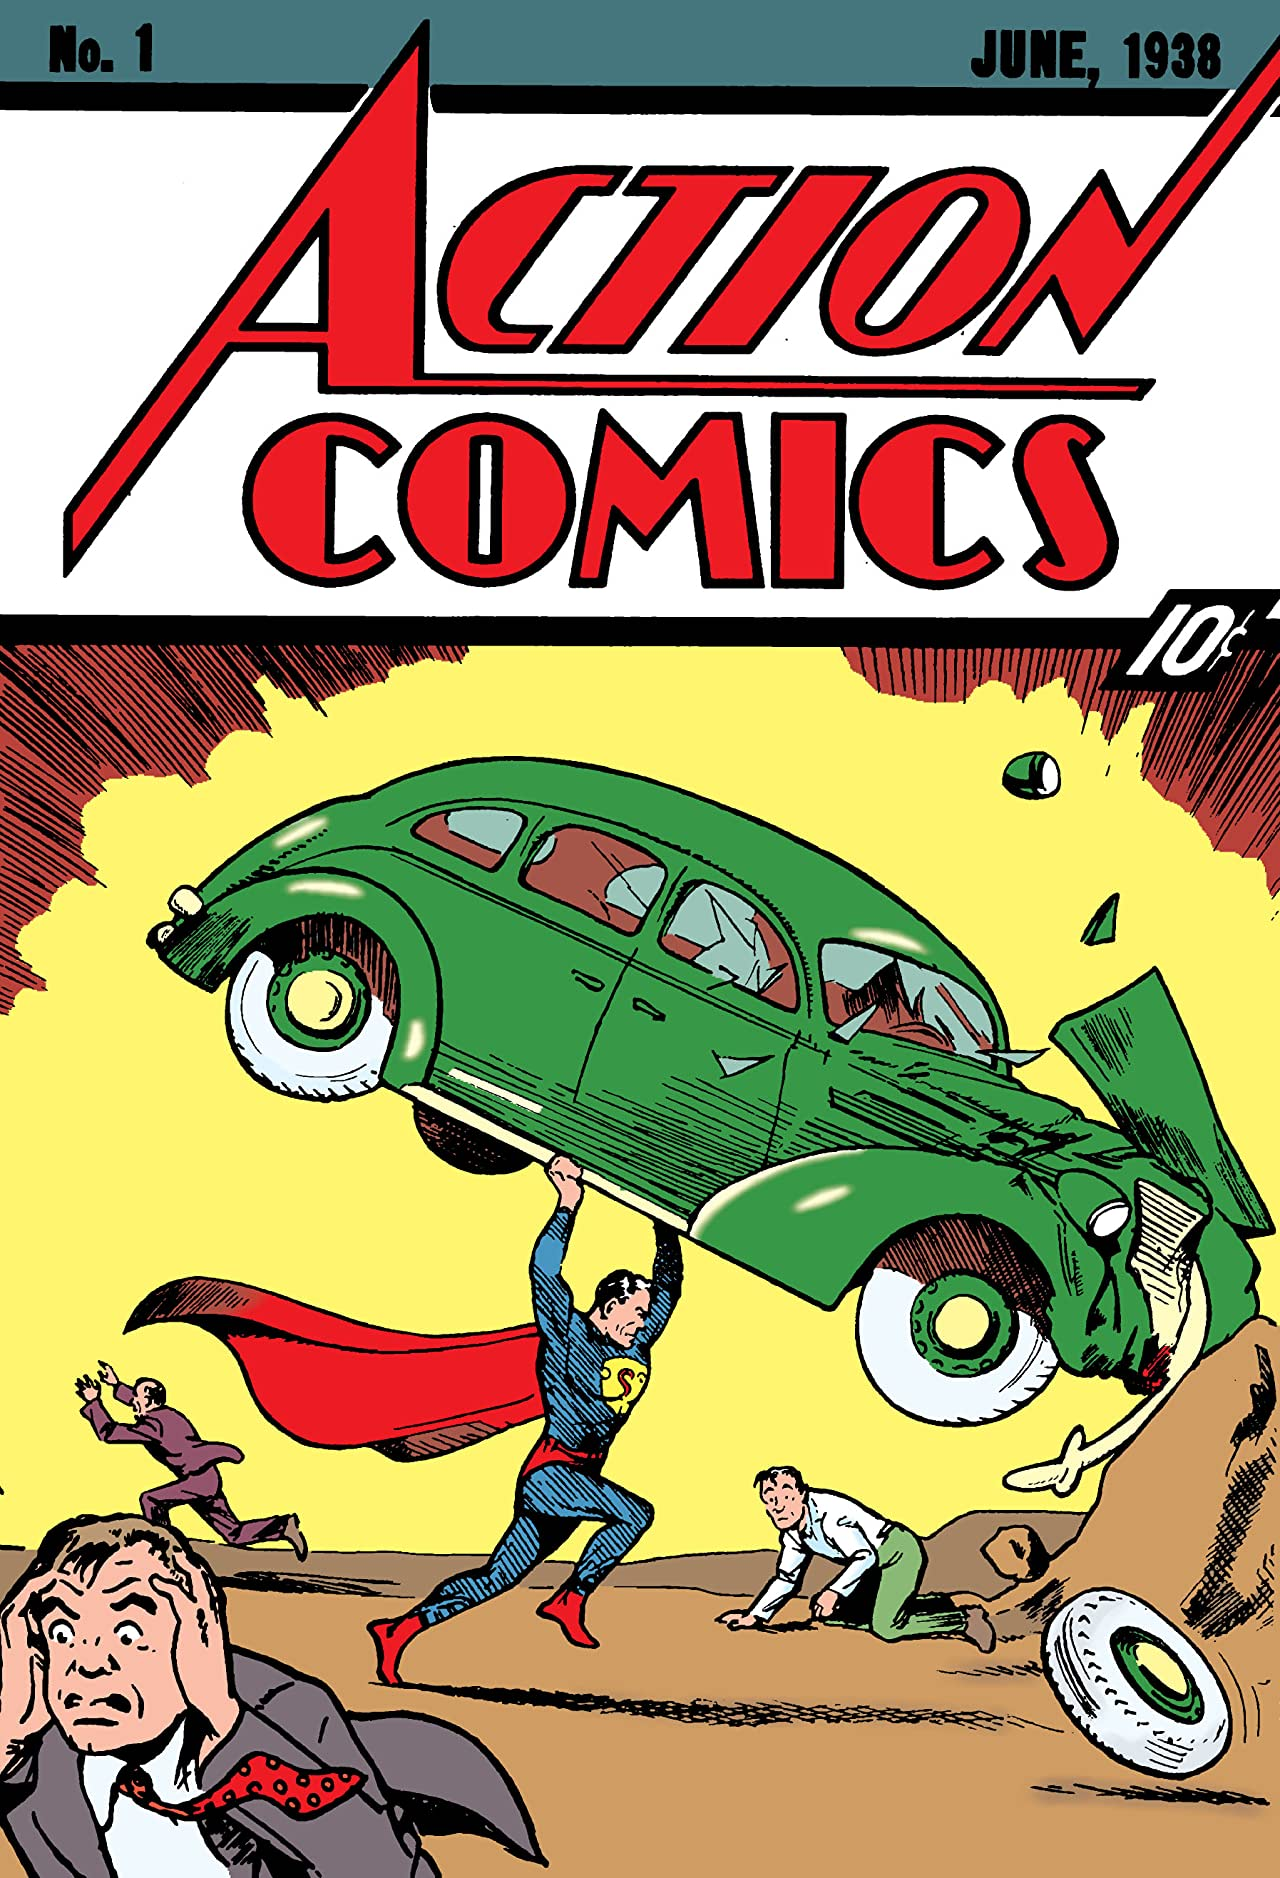 Action Comics #1 (June 1938)